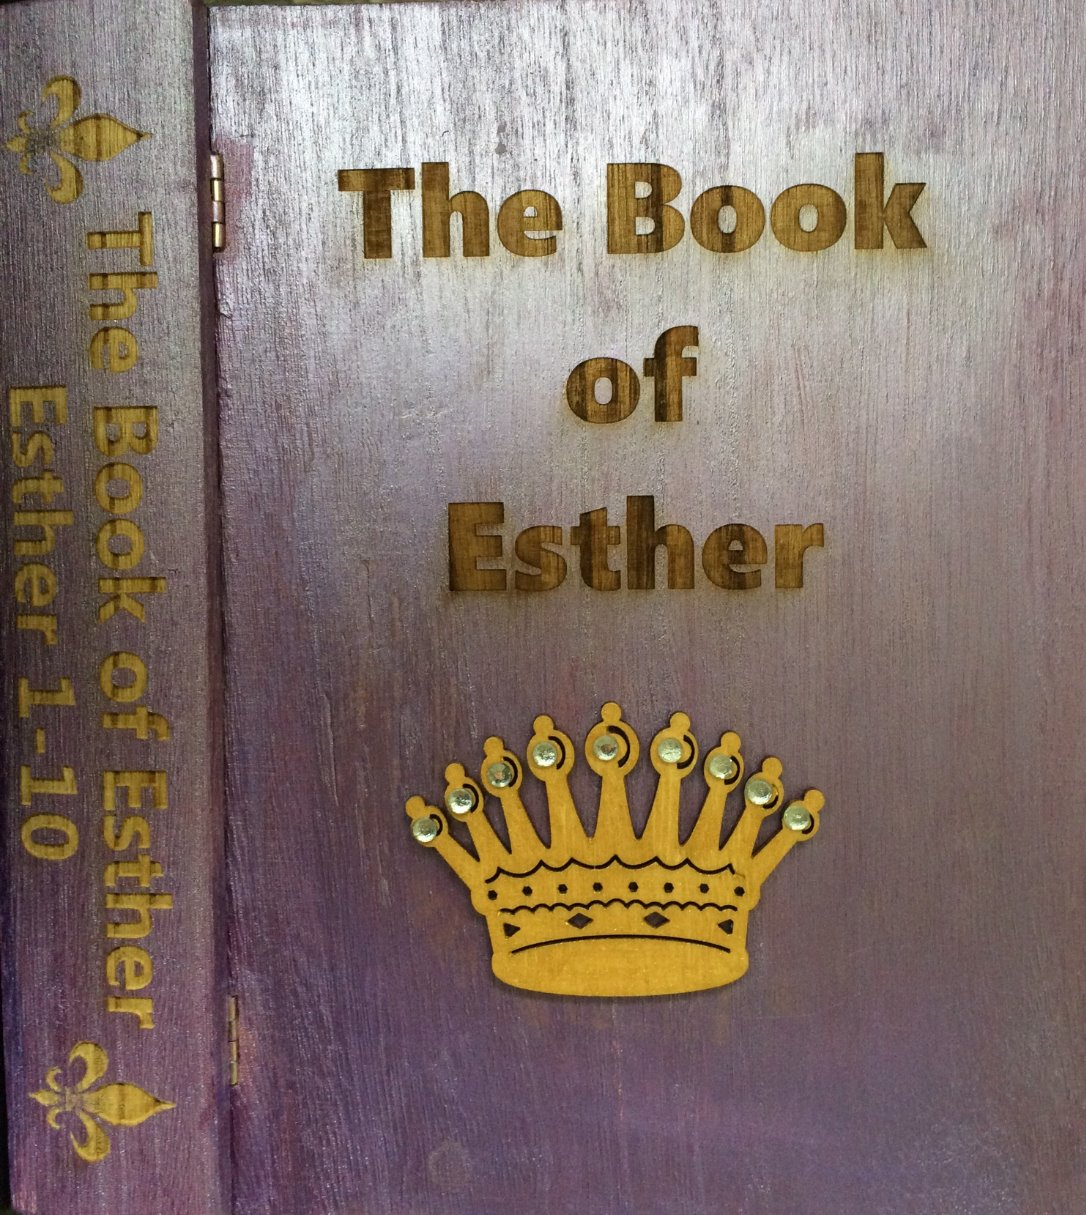 The Book of Esther Cover and Spine